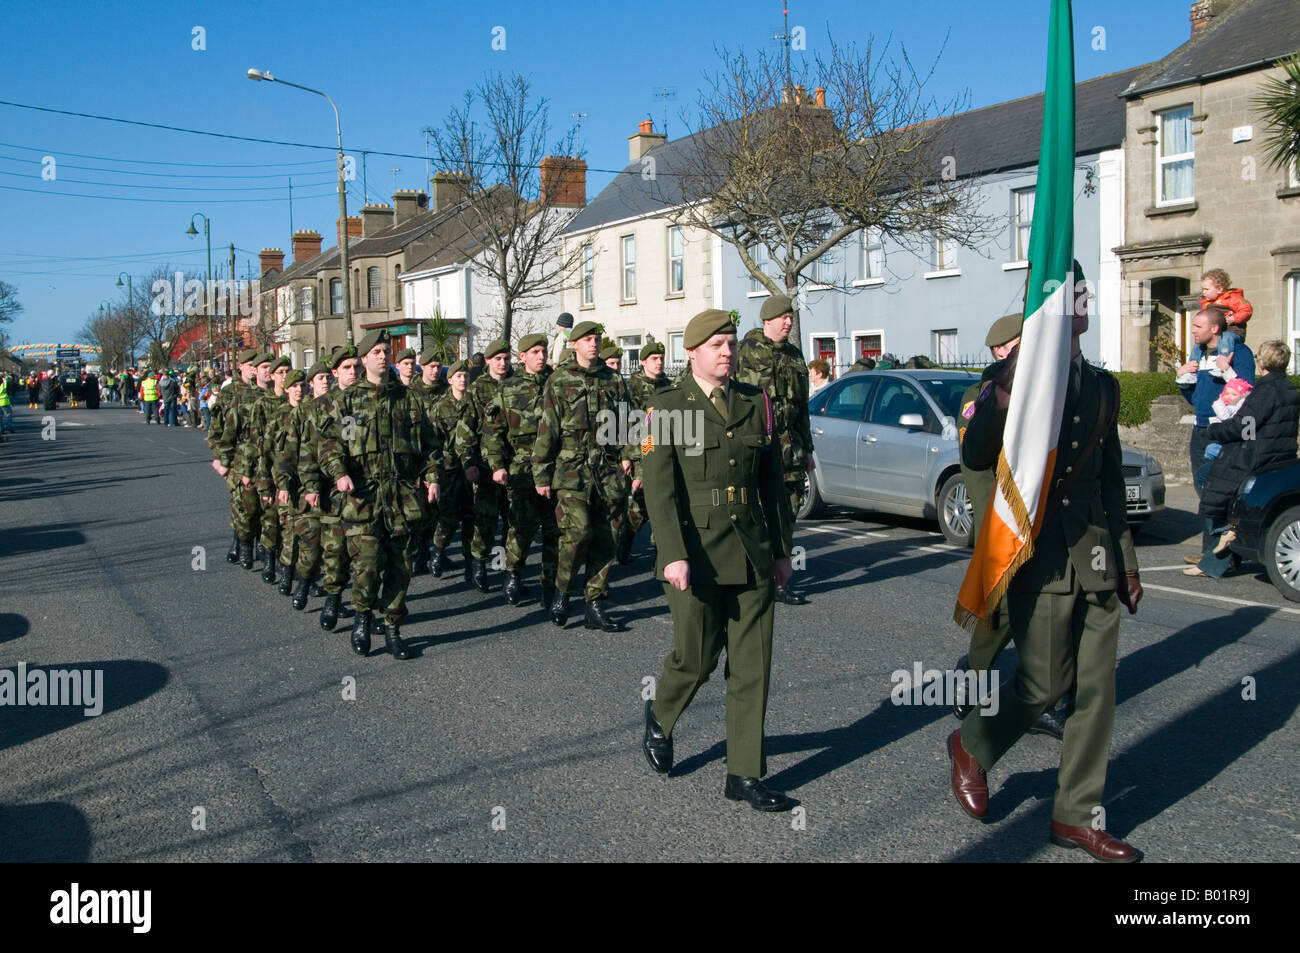 What is an Air Corps Cadet (Pilot) - Defence Forces - brighten-up.uk